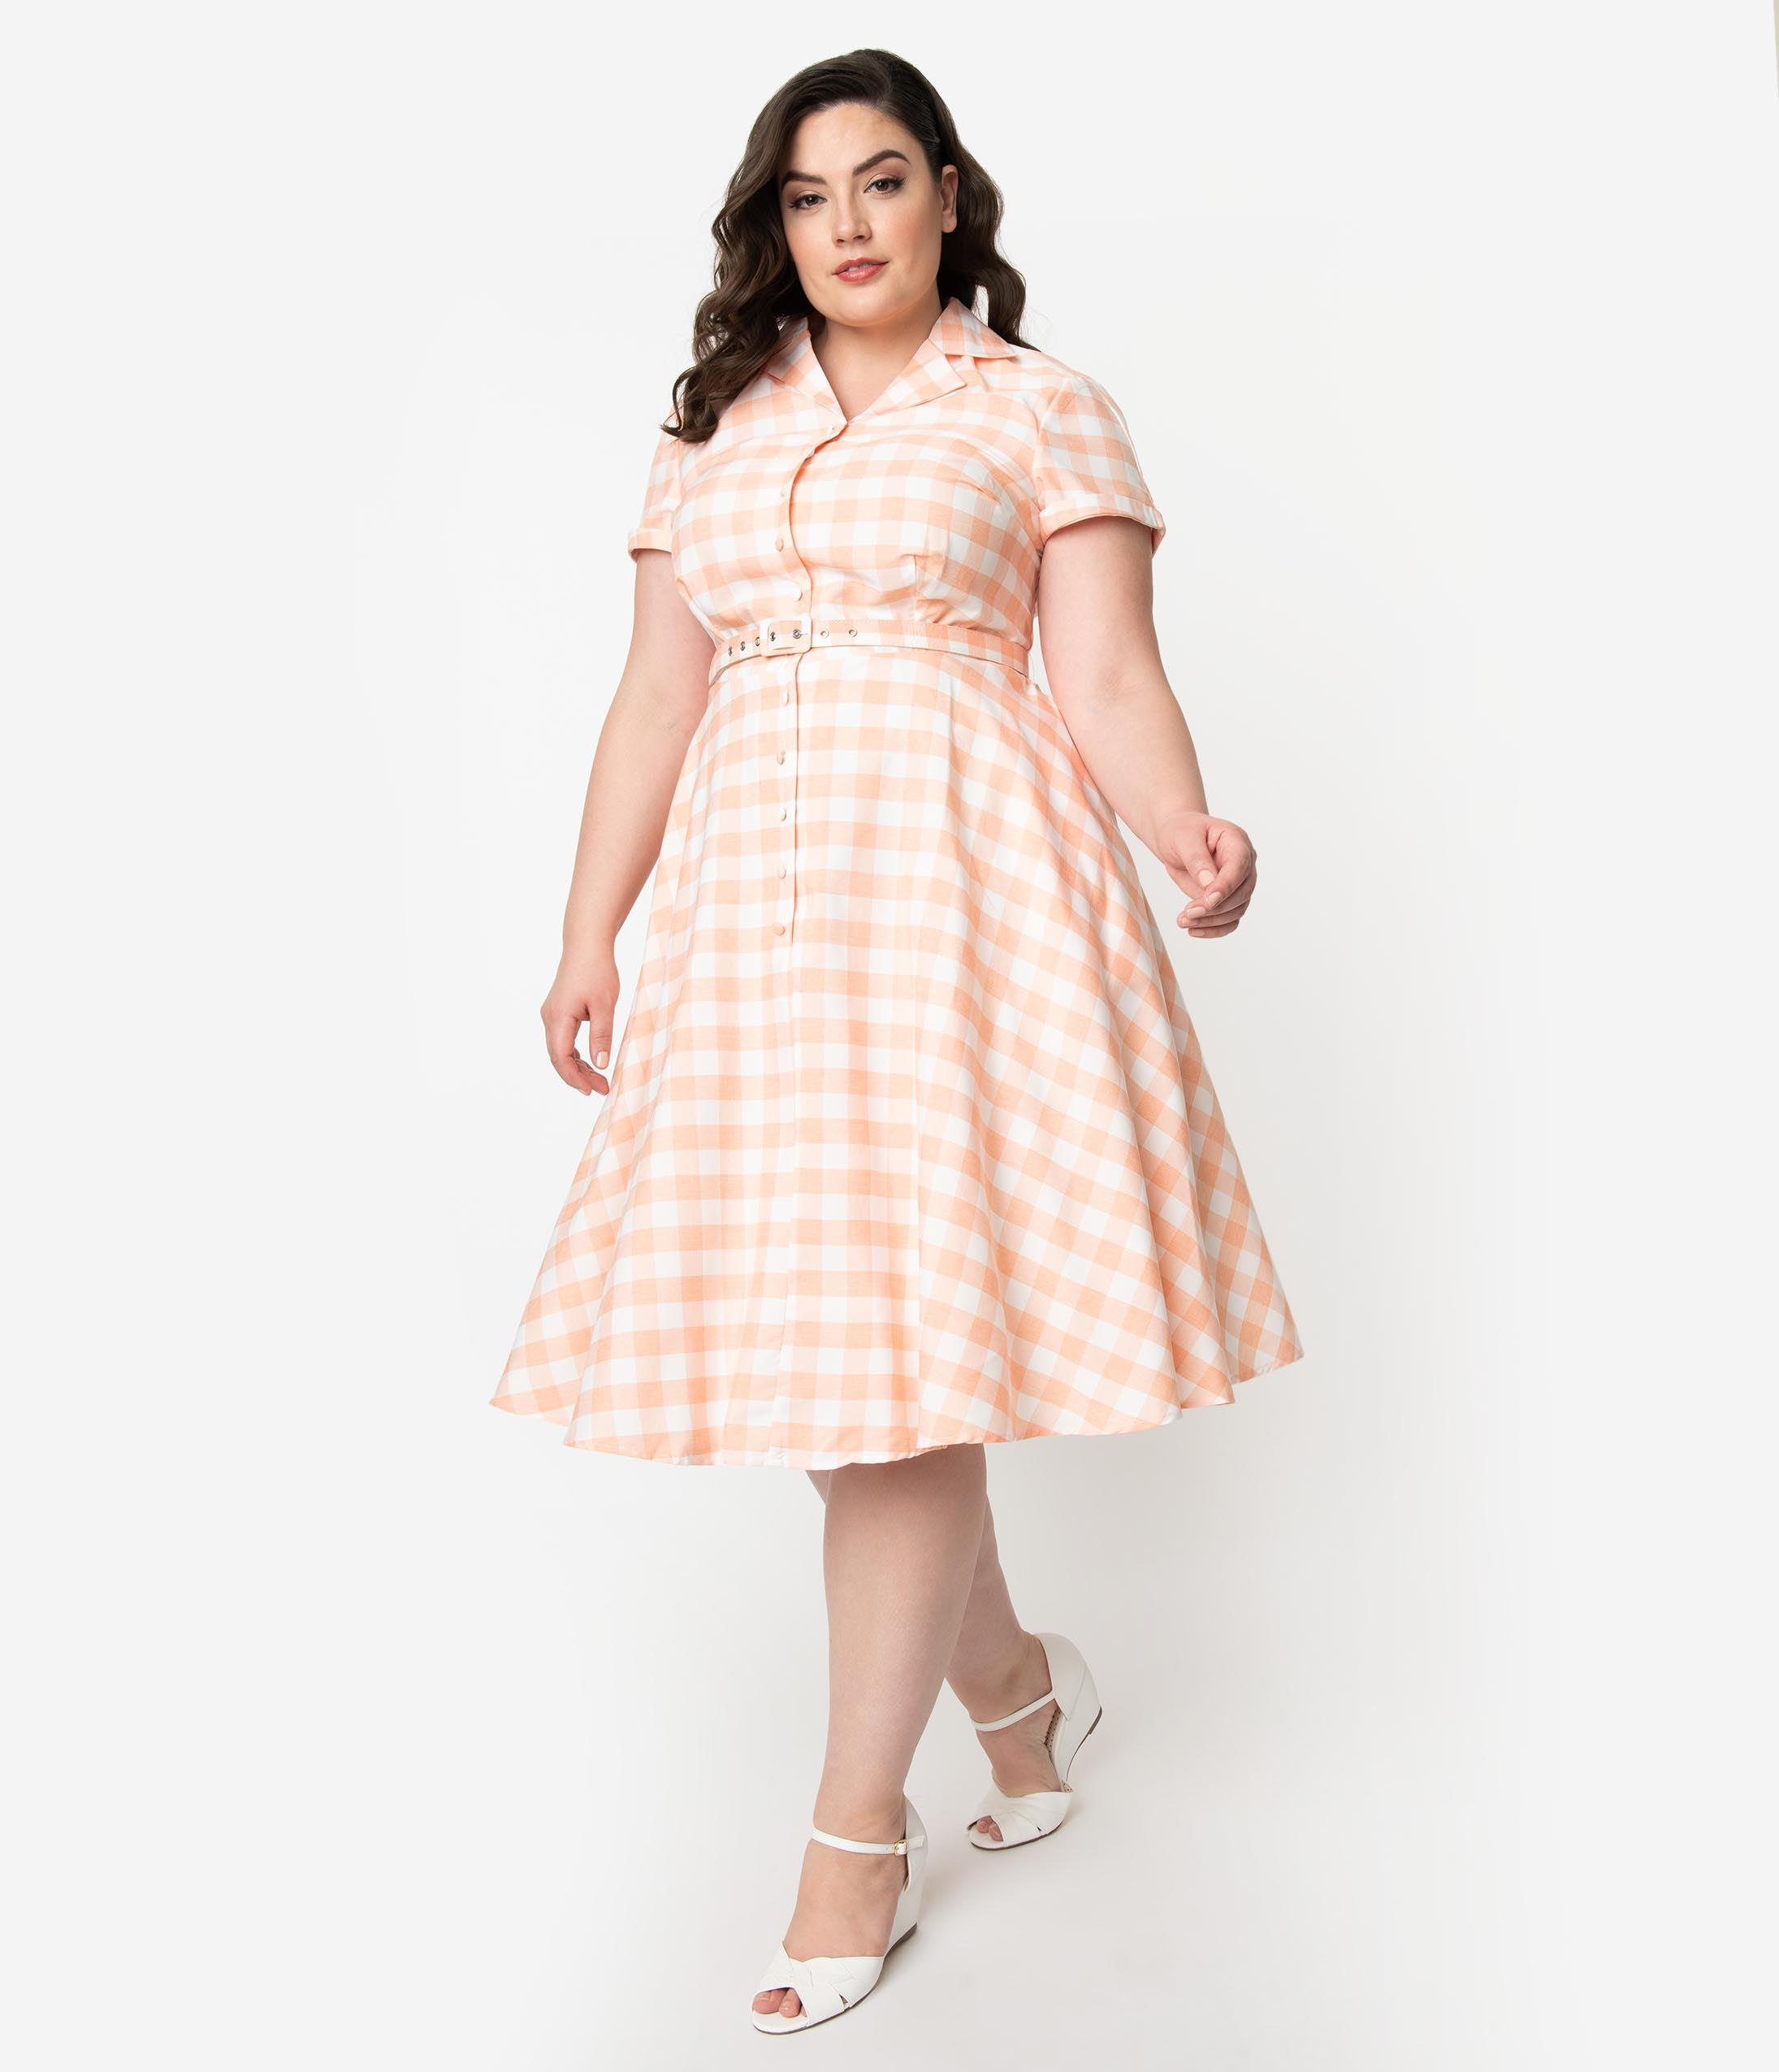 1950s Dresses, 50s Dresses | 1950s Style Dresses Unique Vintage Plus Size 1950S Style Peach  White Gingham Alexis Swing Dress $74.00 AT vintagedancer.com